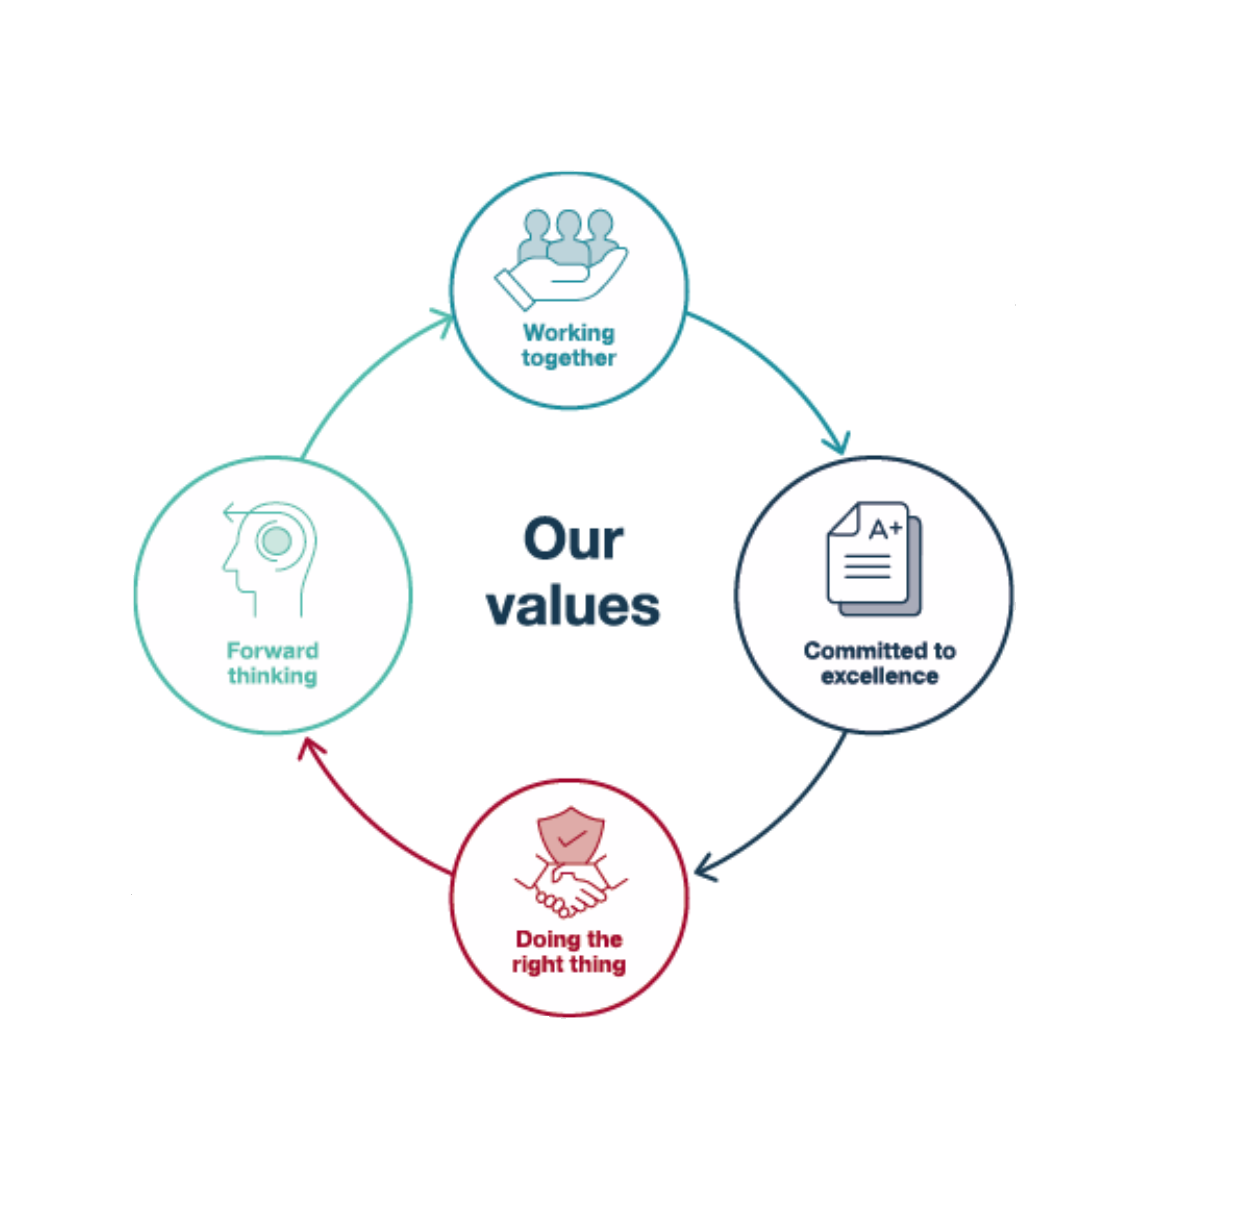 A diagram illustrating the LPP values of working together, doing the right thing, forward thinking and committed to excellence